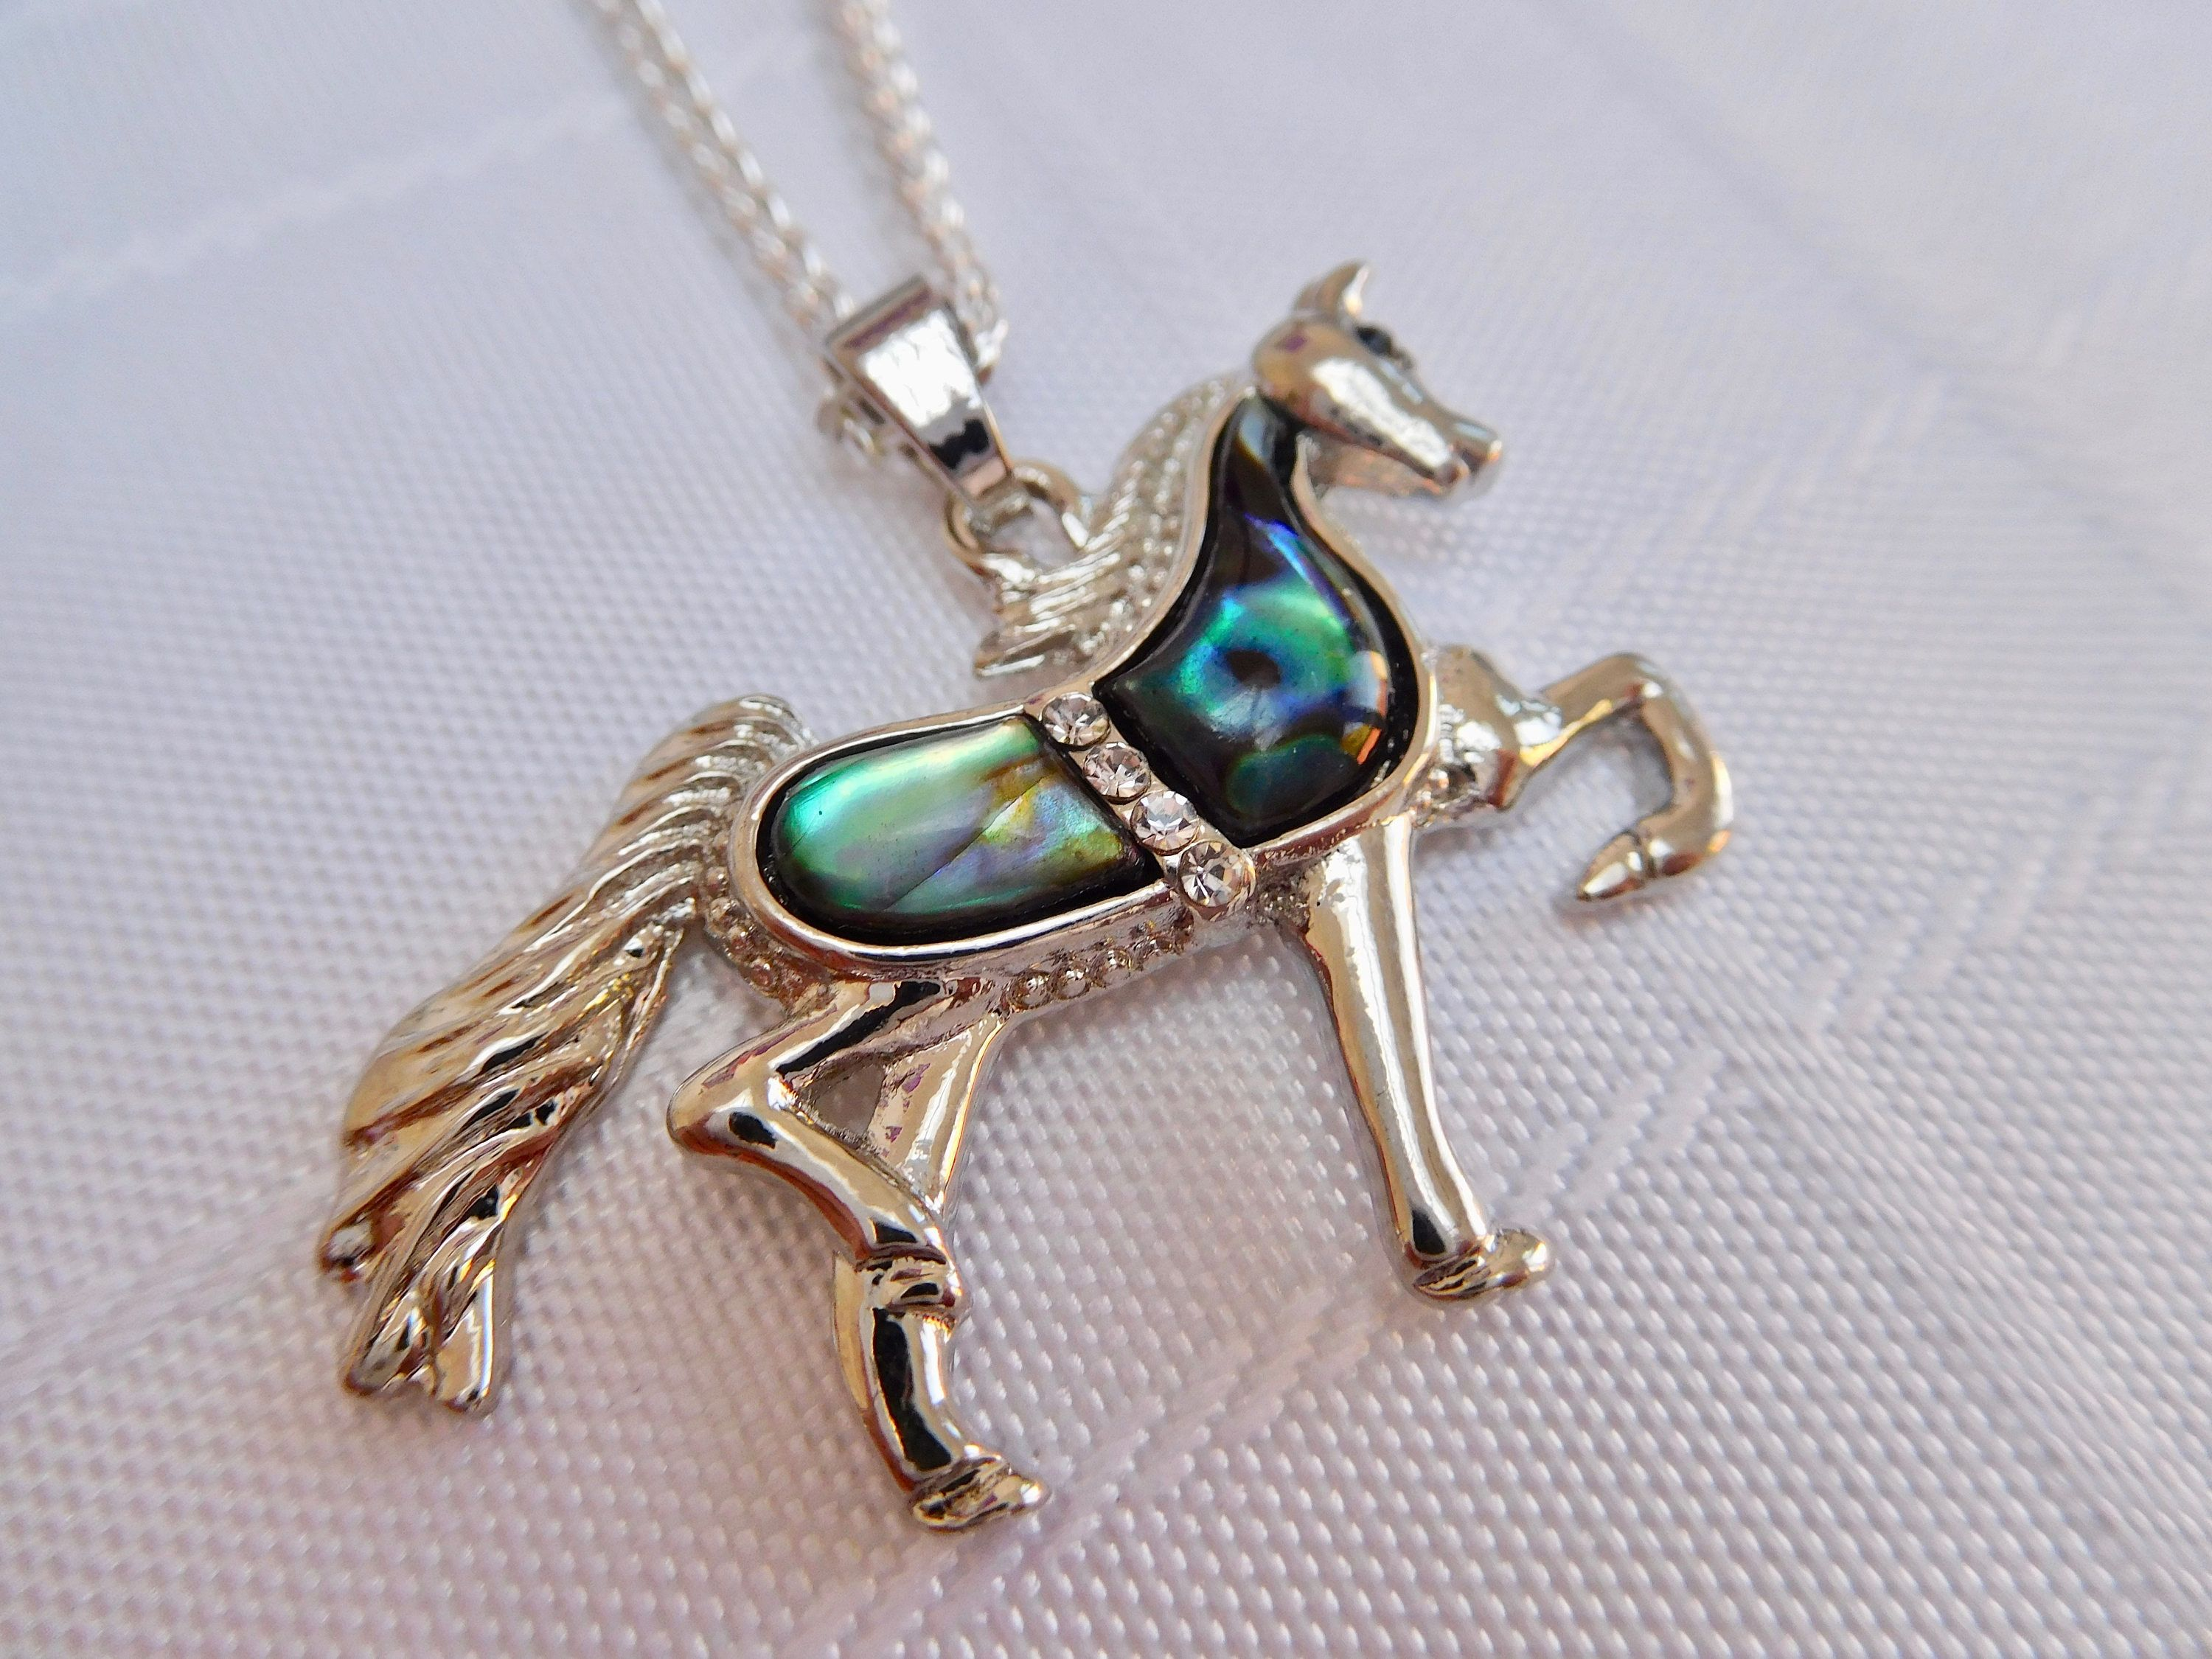 new head equestrian horse designs necklaces from pendants polished loriece angled and is necklace by high